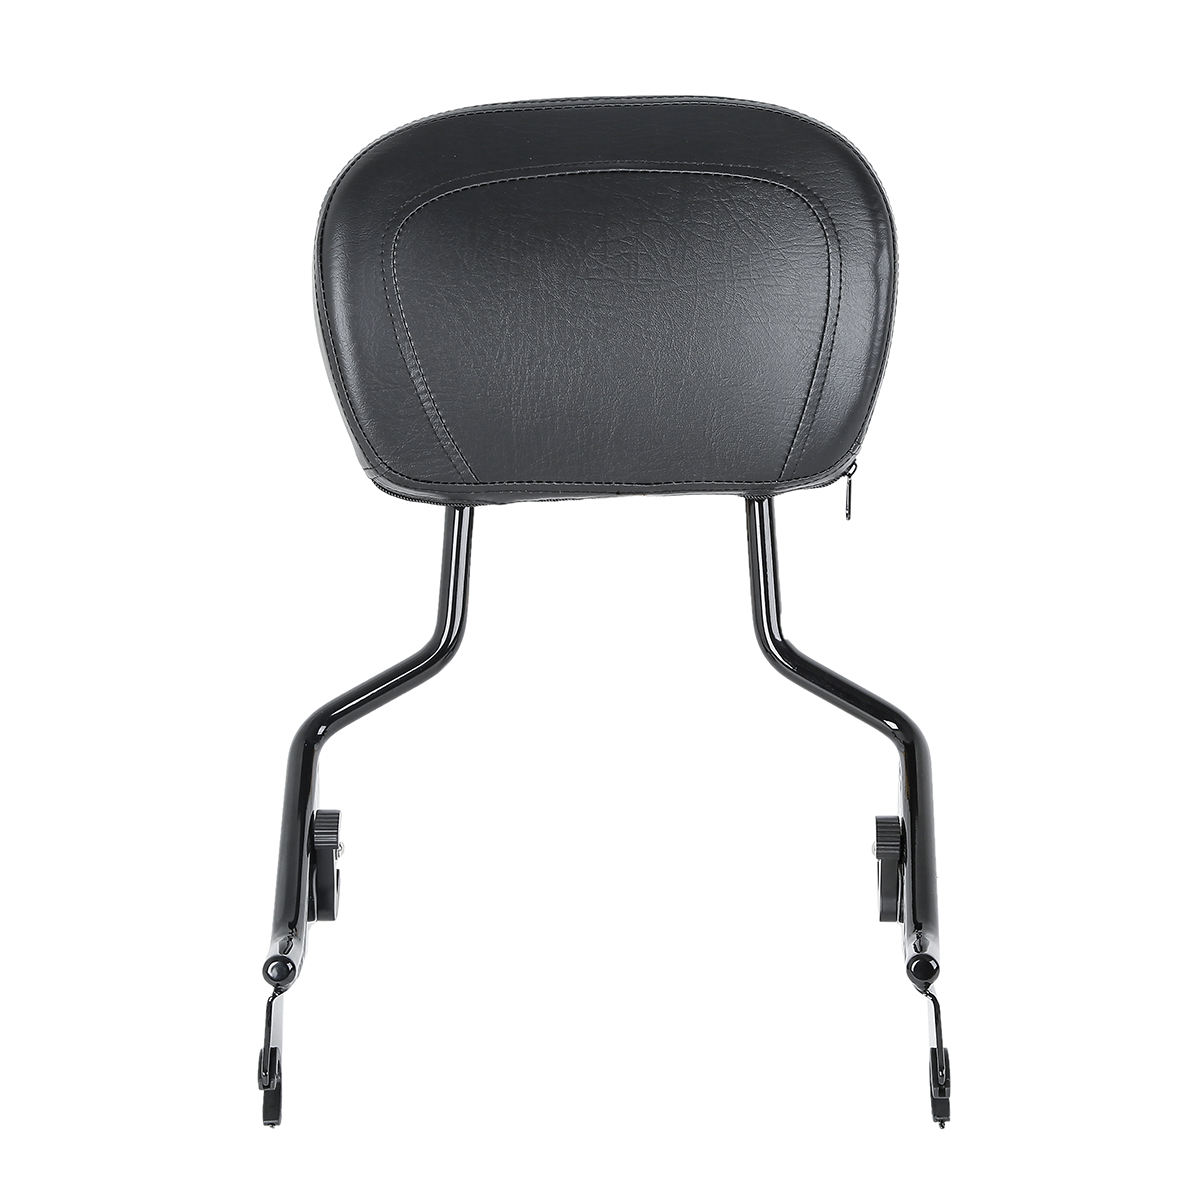 TCMT Detachable Backrest Sissy Bar /& Rack Fits For Harley Electra Street Road Glide 2009-2018